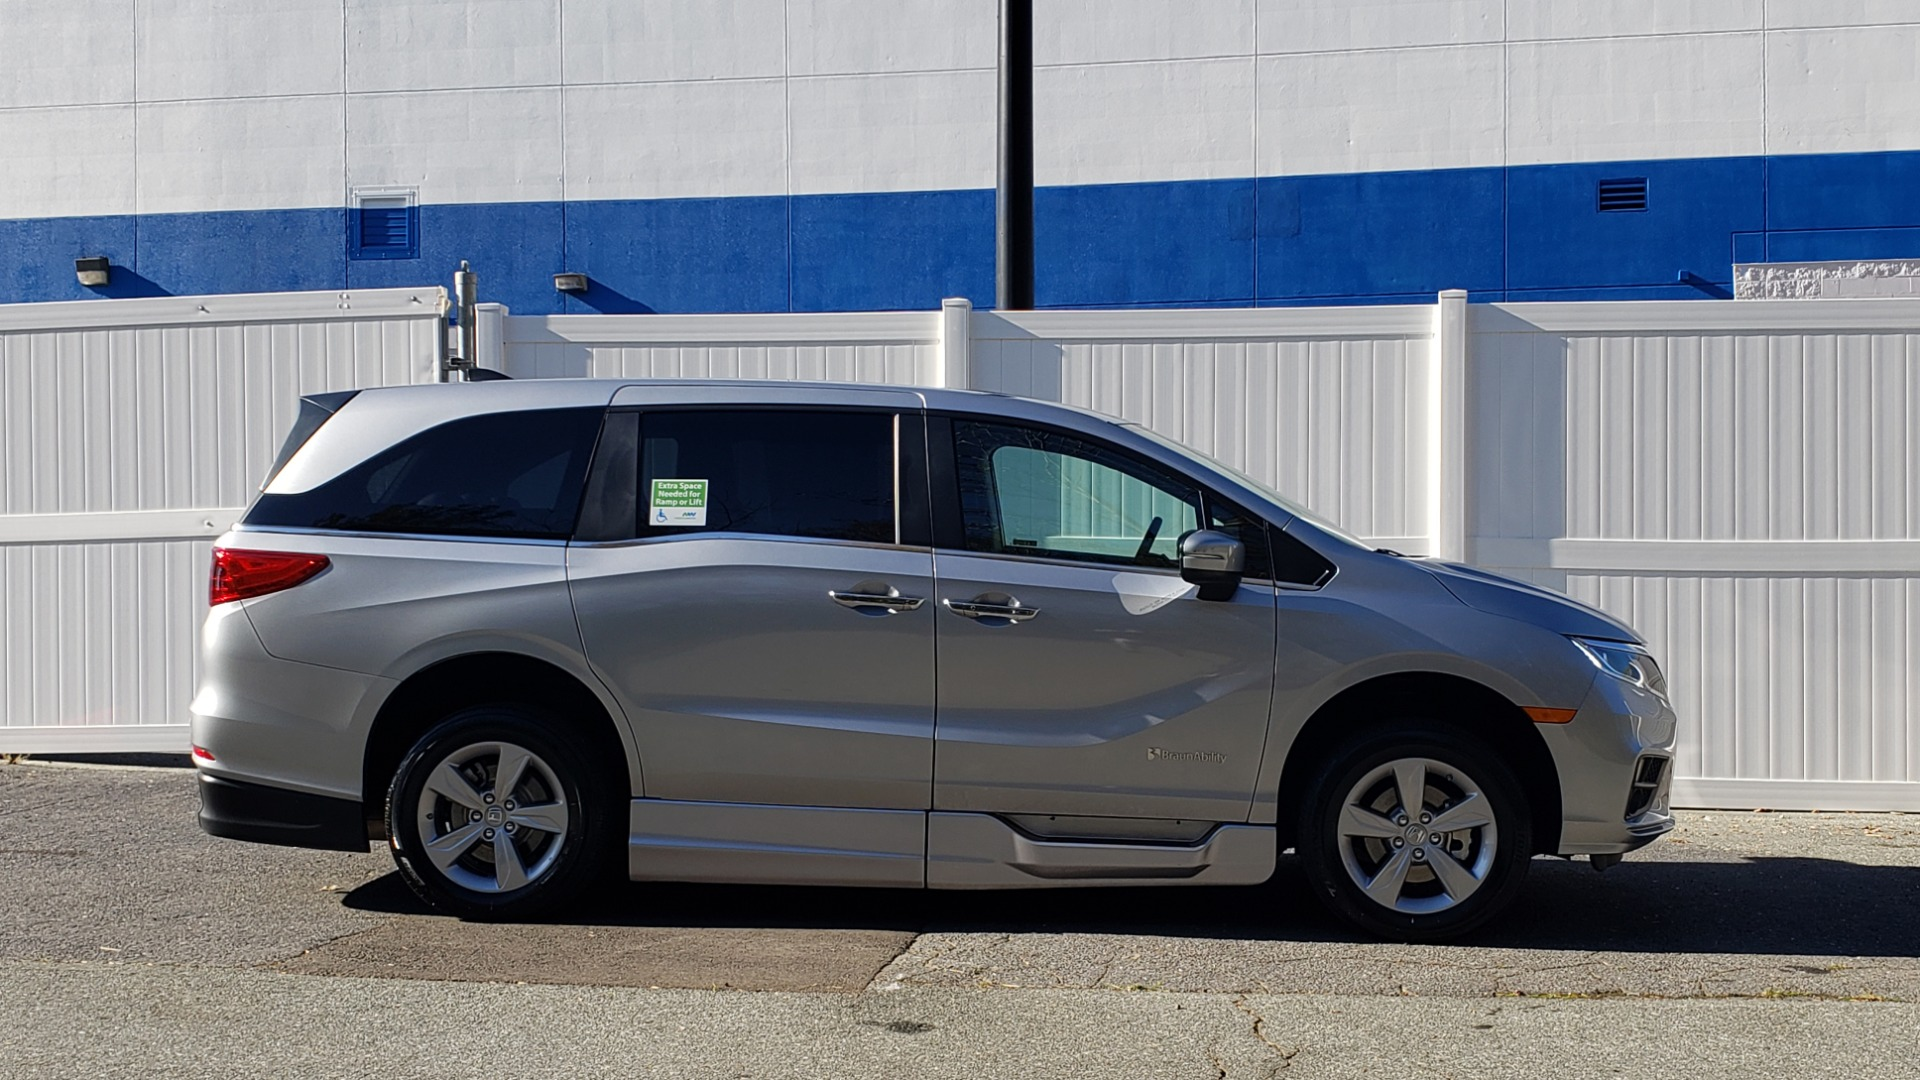 Used 2019 Honda ODYSSEY EX-L BRAUNABILITY / NAV / RES / LKA / BLUE-RAY / SUNROOF / REARVIEW for sale Sold at Formula Imports in Charlotte NC 28227 5